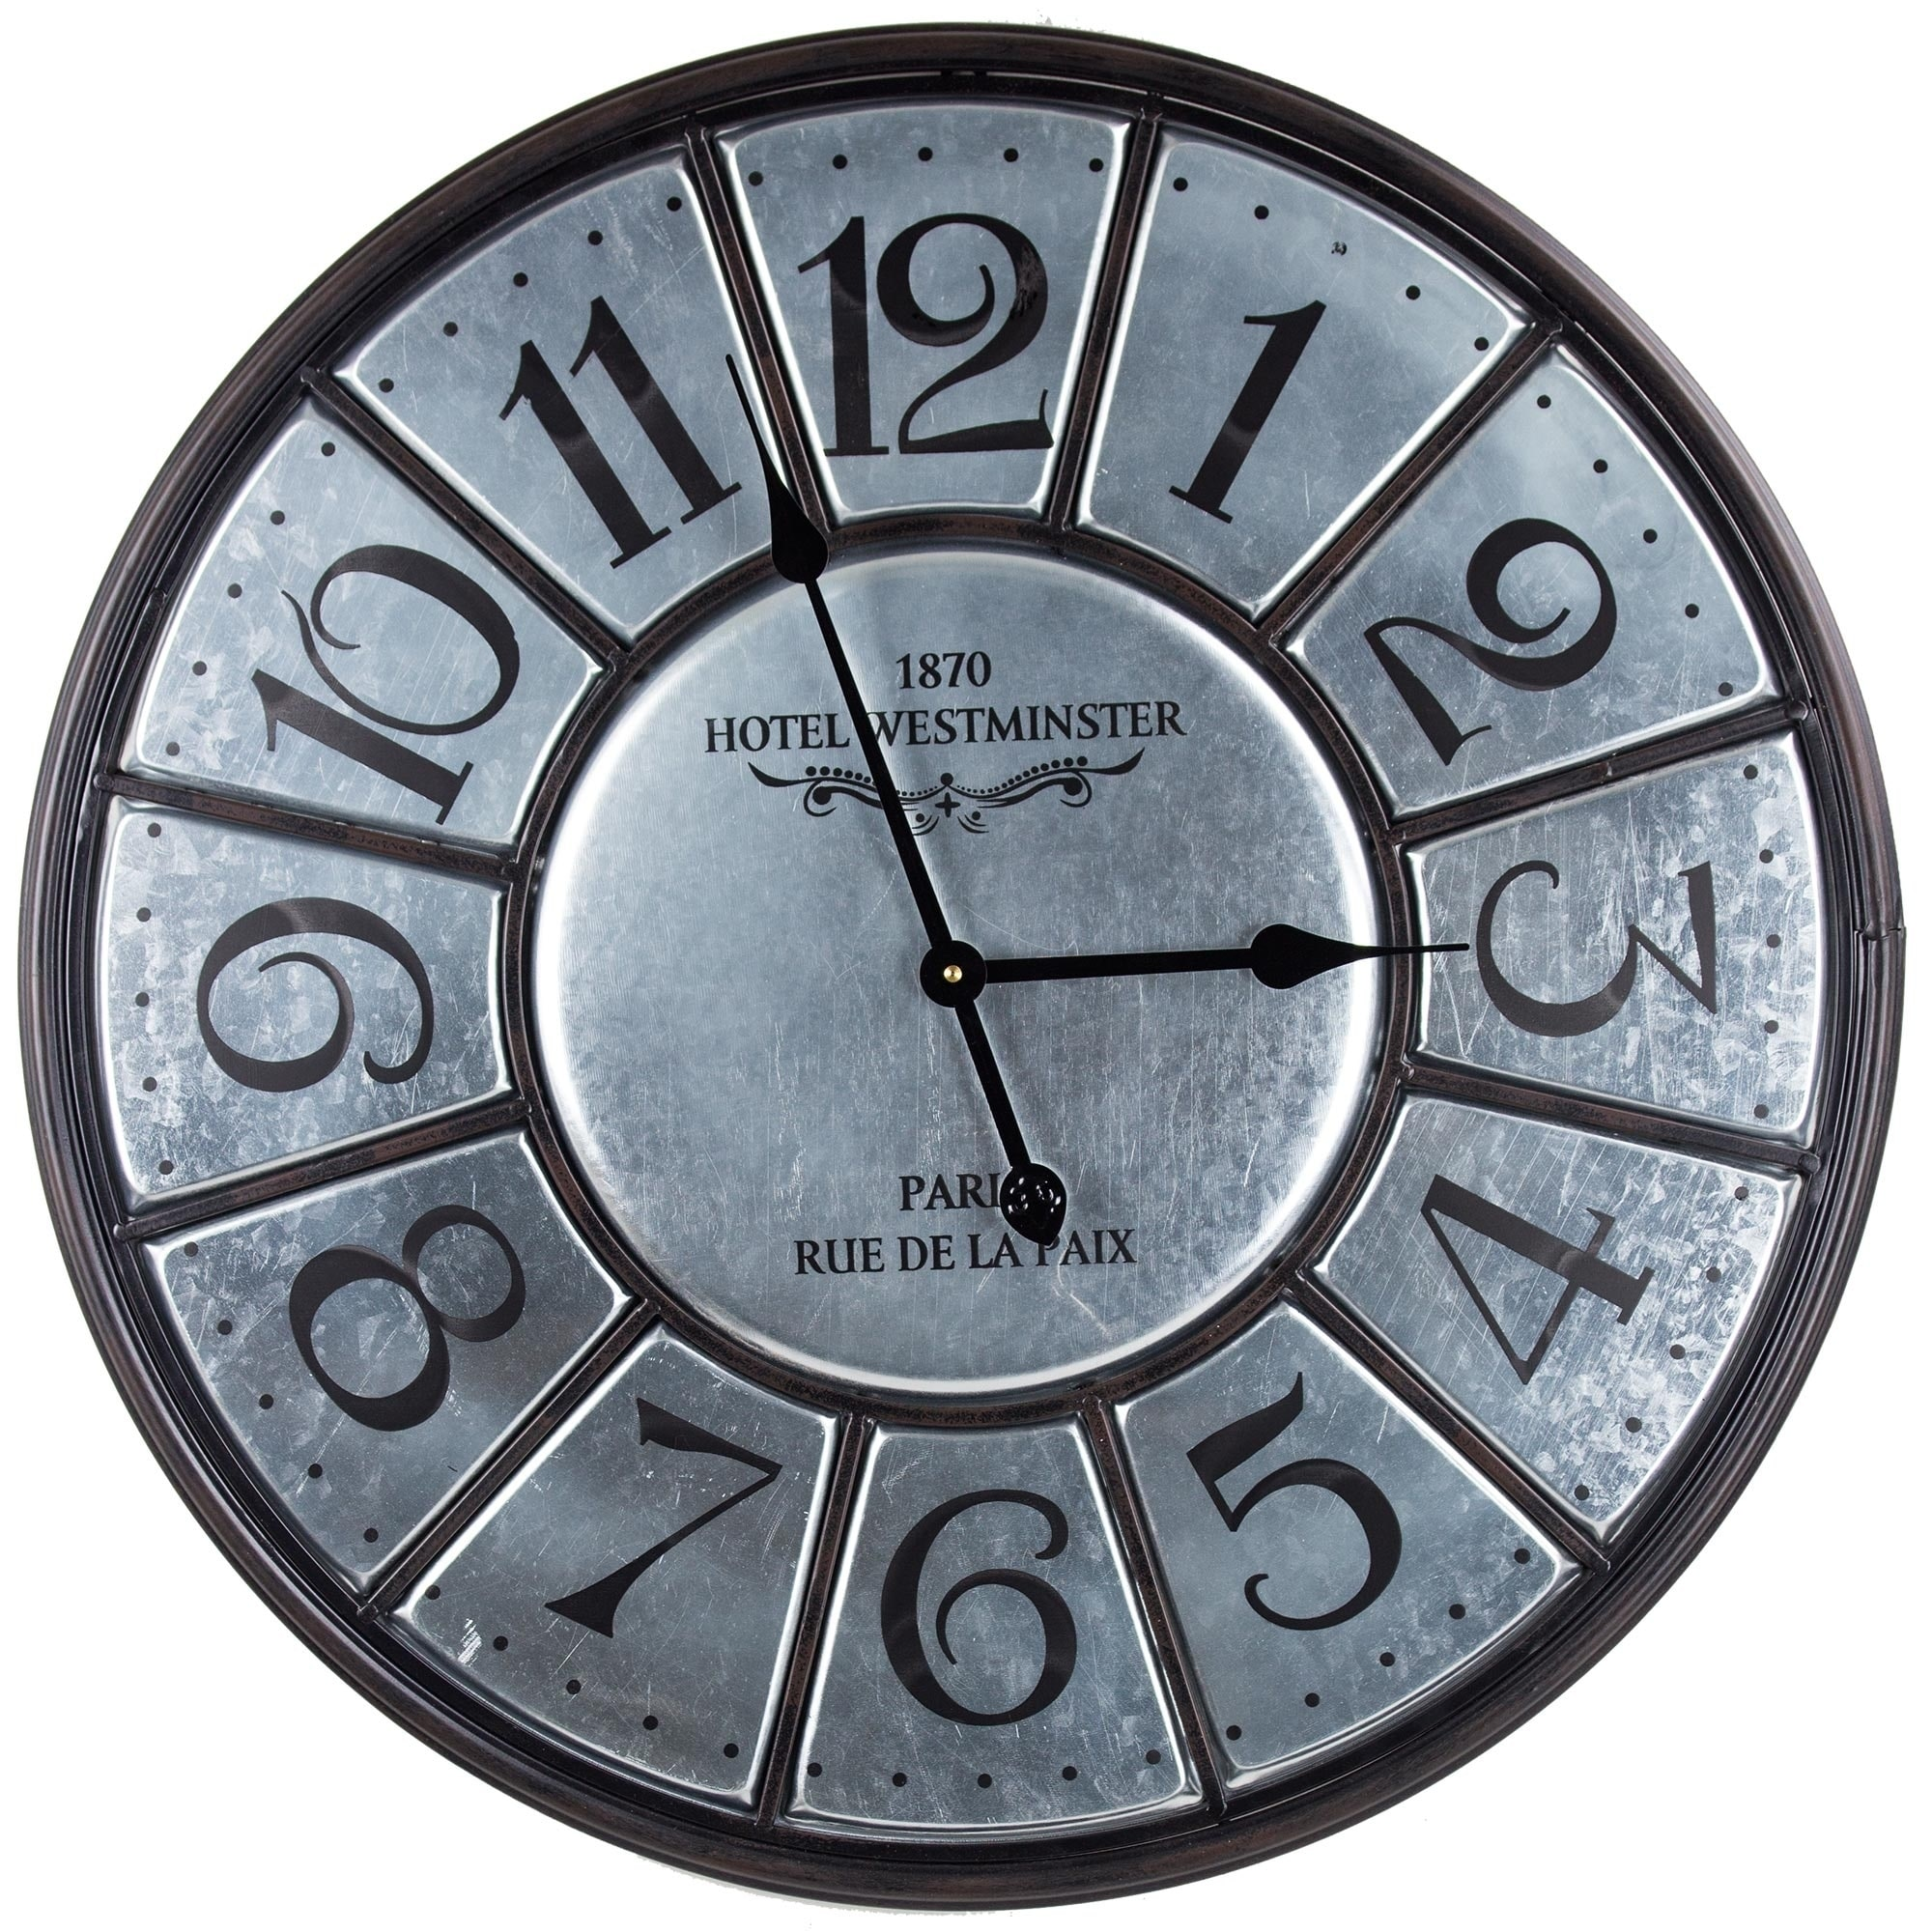 Metal wall clock round european antique style home office metal wall clock round european antique style home office decorative accents amipublicfo Image collections